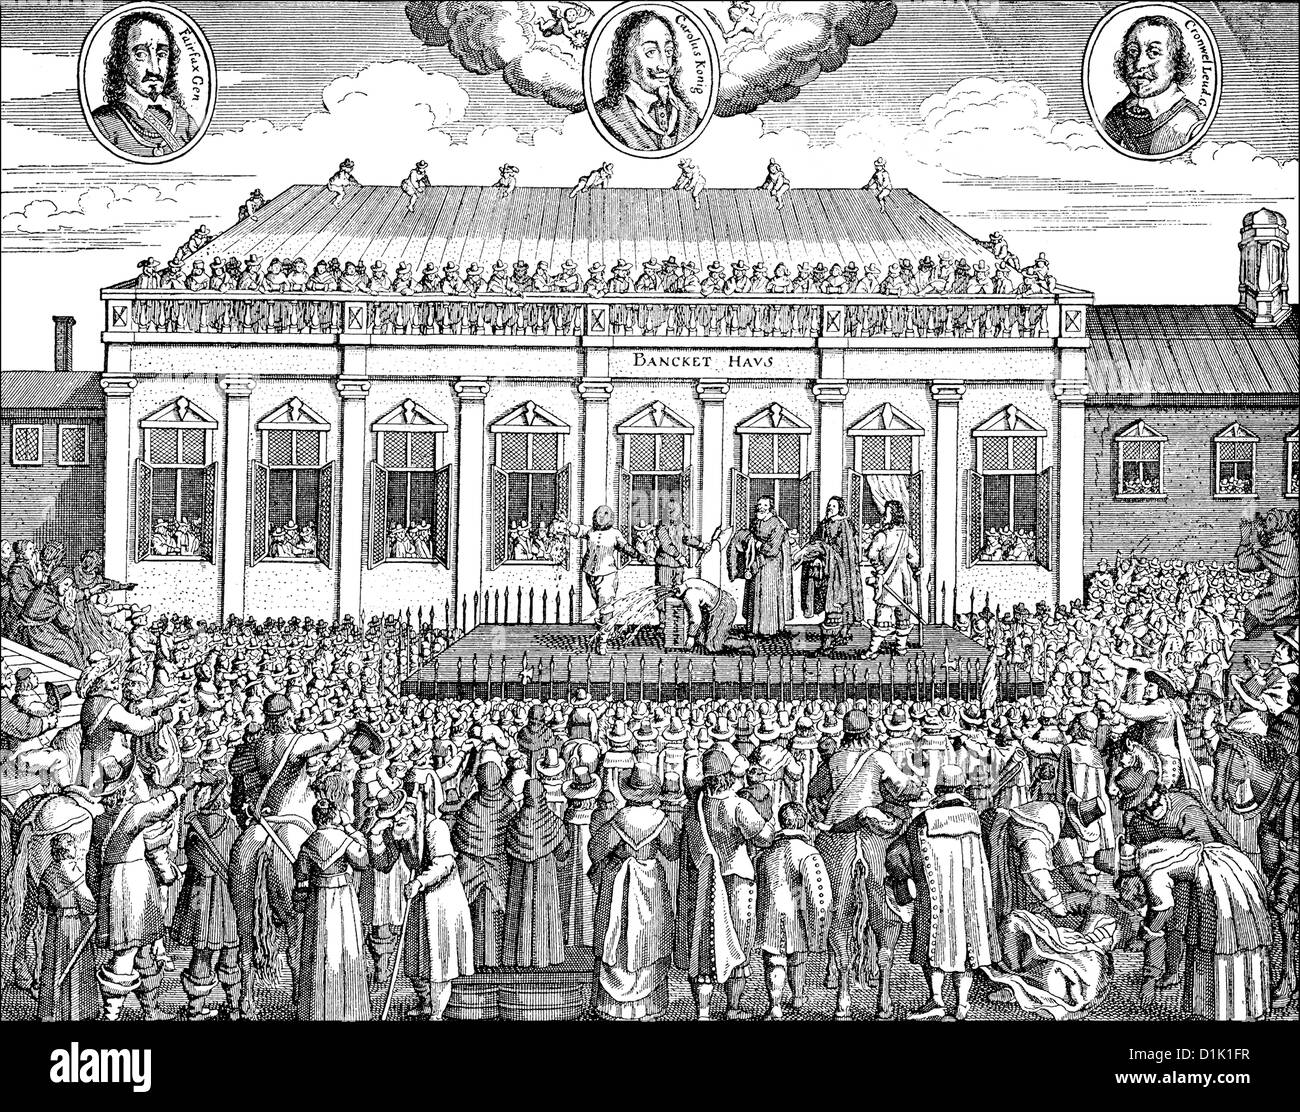 execution of Charles I, 1600 - 1649, in front of the Whitehall Palace in  London, on 30th January 1649, King of England, Scotland